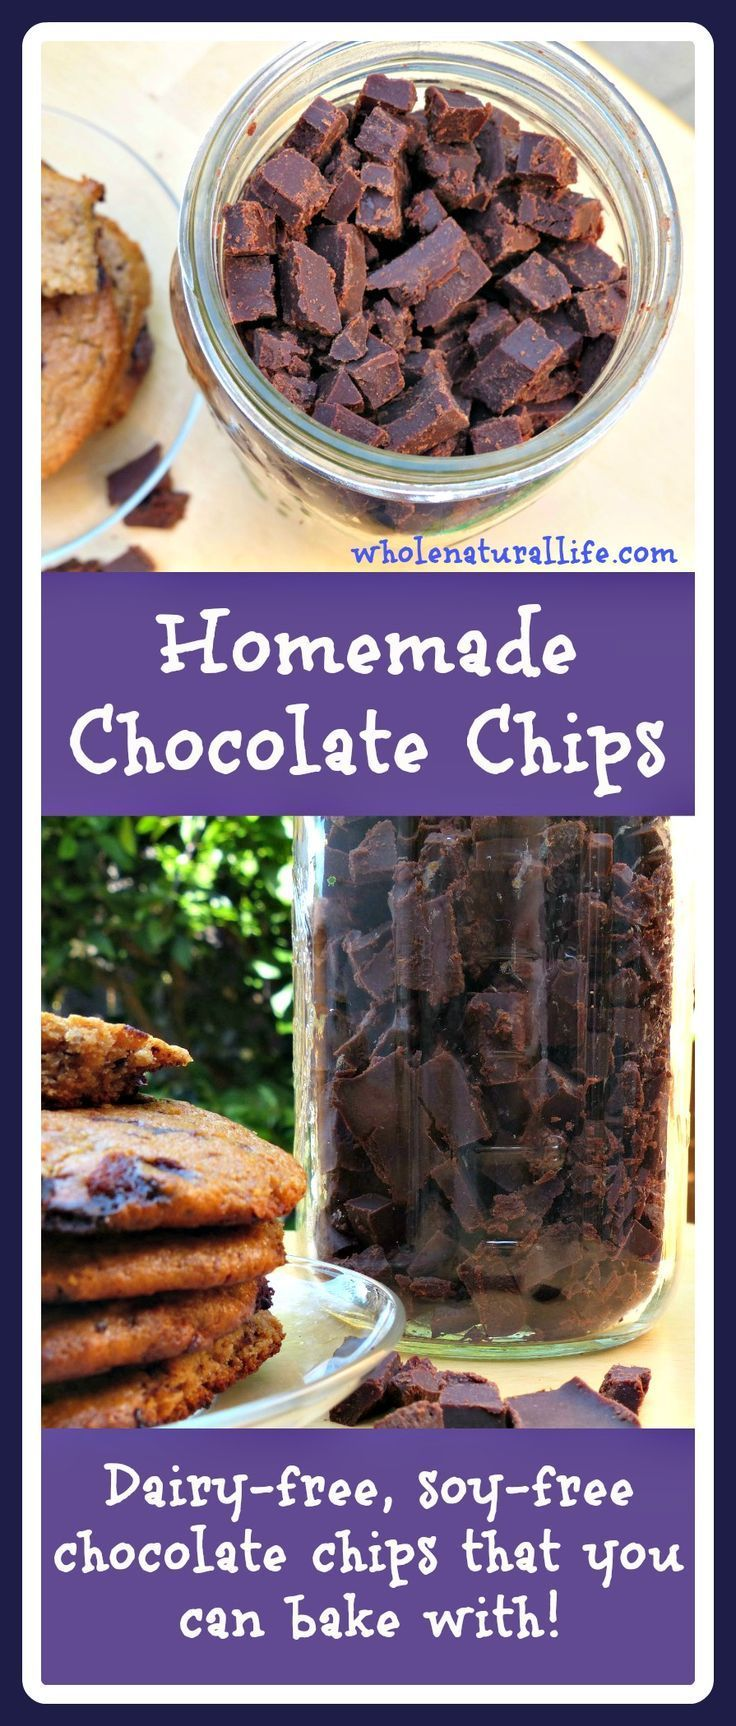 Learn how to make your own chocolate chips with this easy tutorial. These homemade chocolate chips are soy-free, dairy-free, and honey-sweetened, and can be used in all of your favorite baked goods!